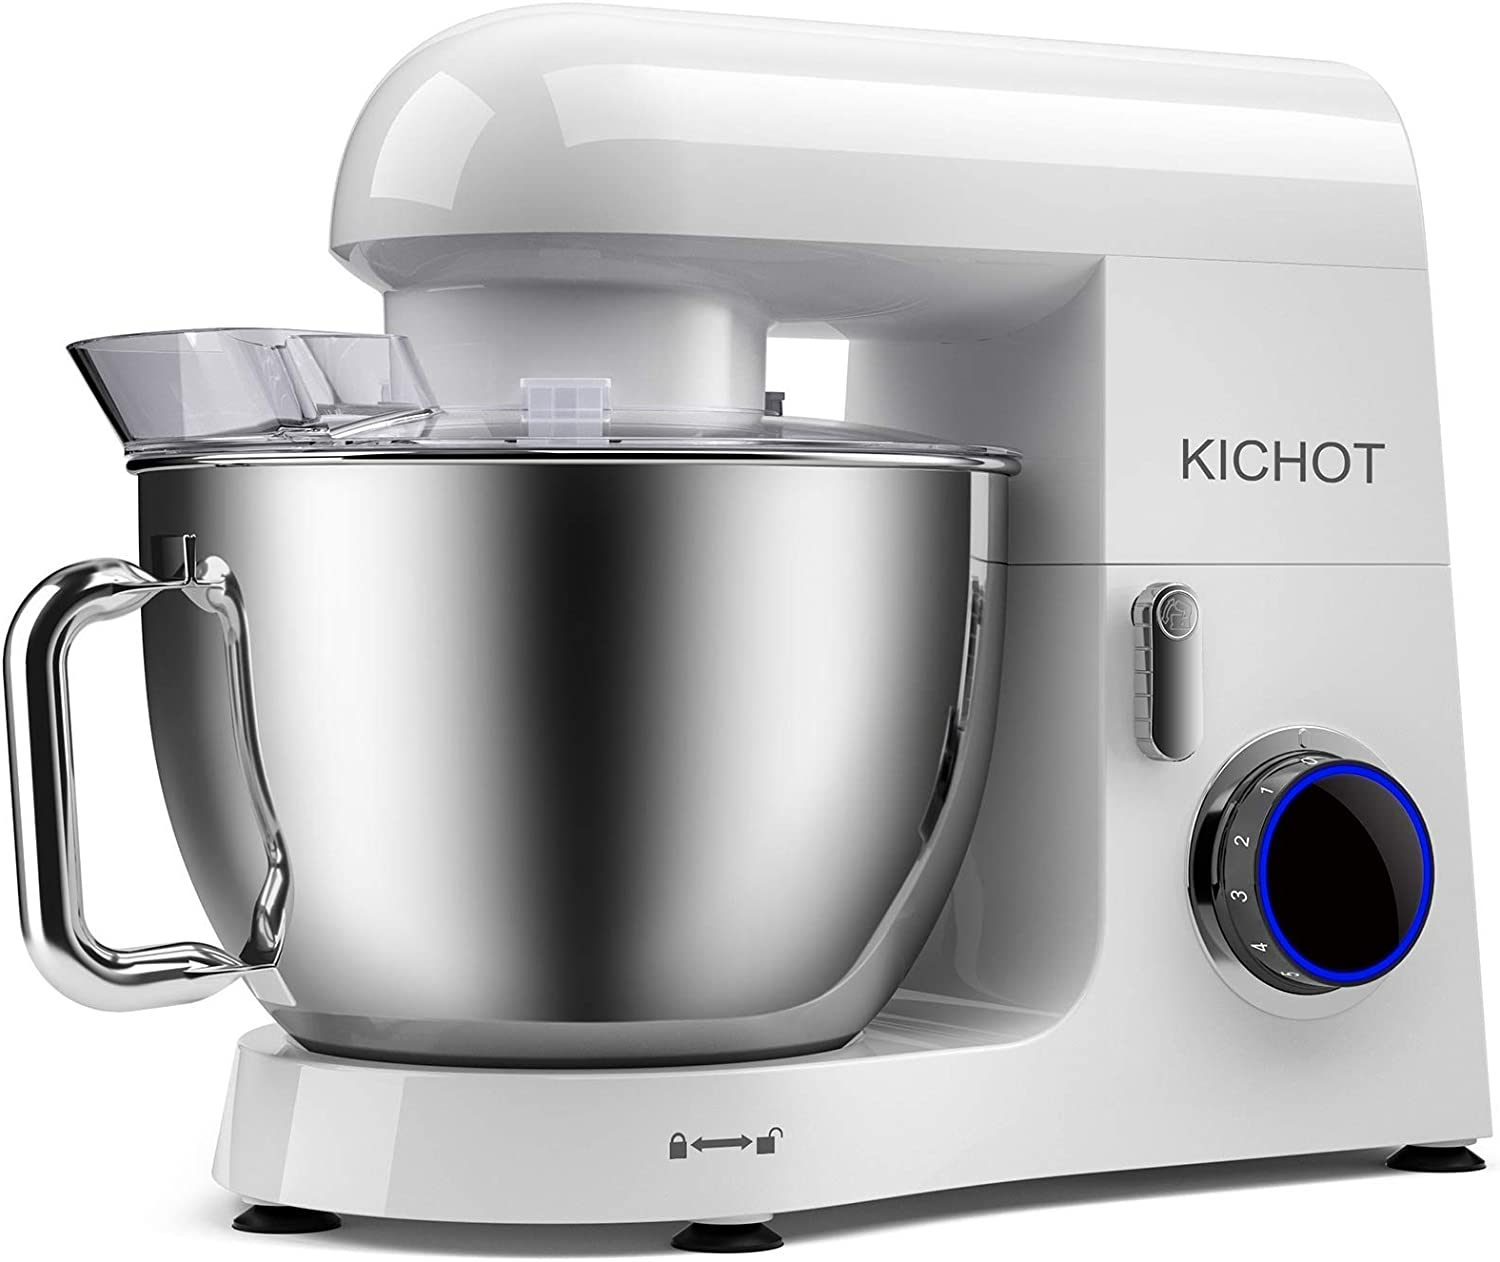 KICHOT Stand Mixer, 8.5QT 800W Powerful Metal Housing Electric Tilt Head Food Mixer, Kitchen Mixer with Dough Hook, Flat Beater, Wire Whisk and Splash Guard (White)